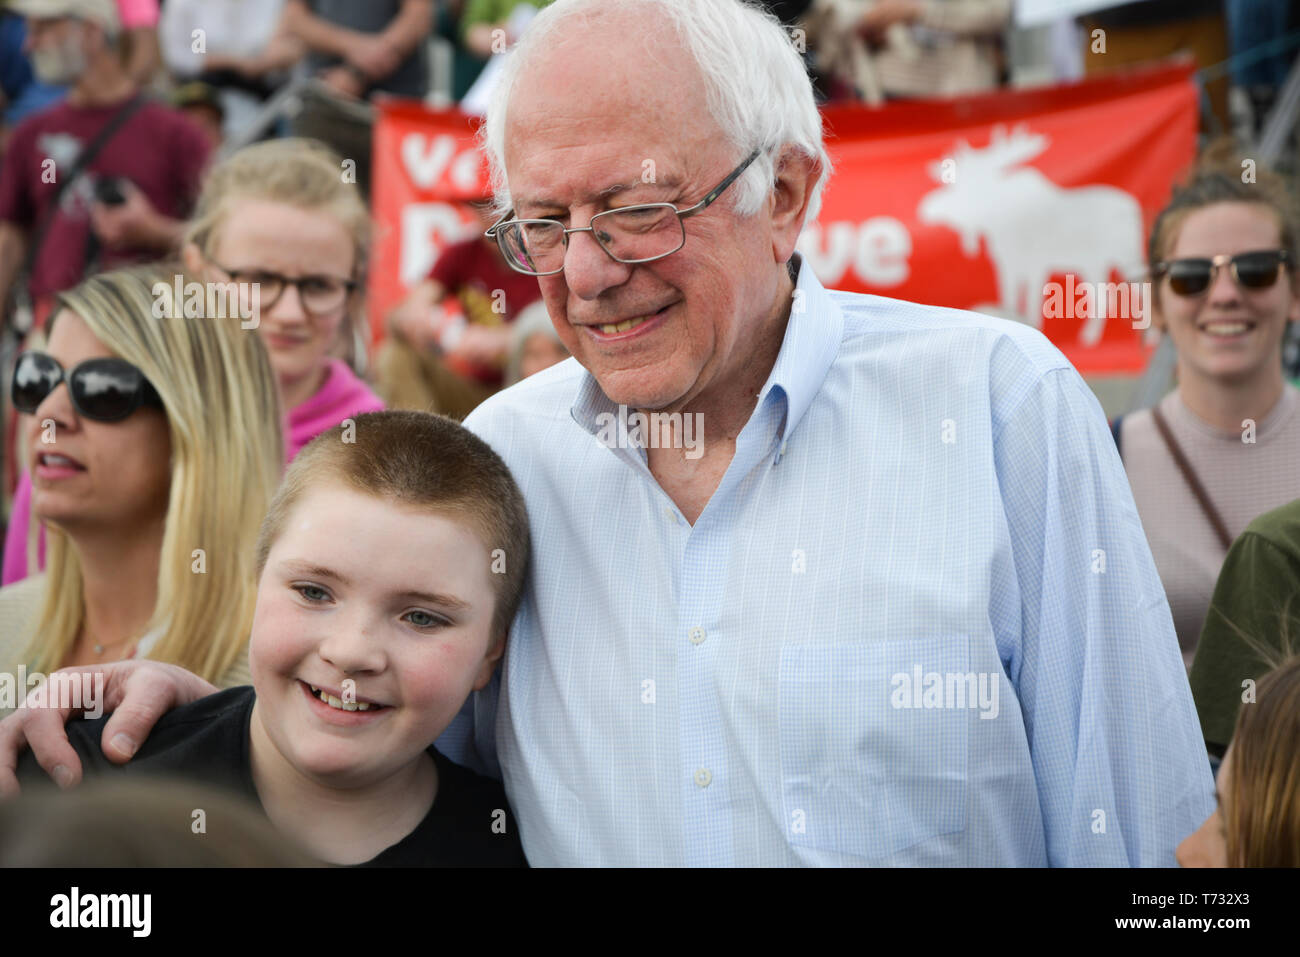 US Sen. Bernie Sanders, I-VT, at the 2017 Vermont Climate March Solidarity Rally, Vermont State House, Montpelier, VT. - Stock Image